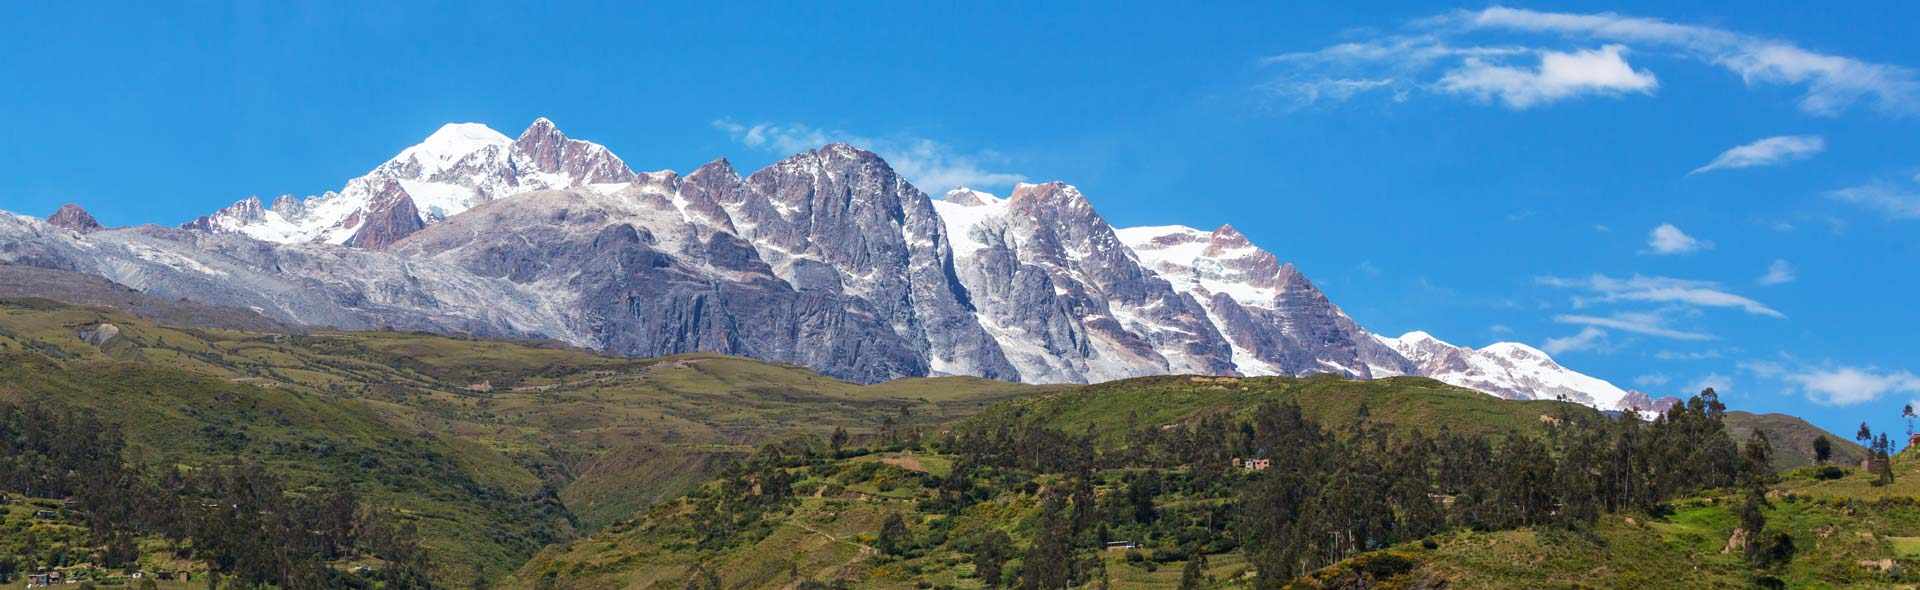 mountains-in-bolivia